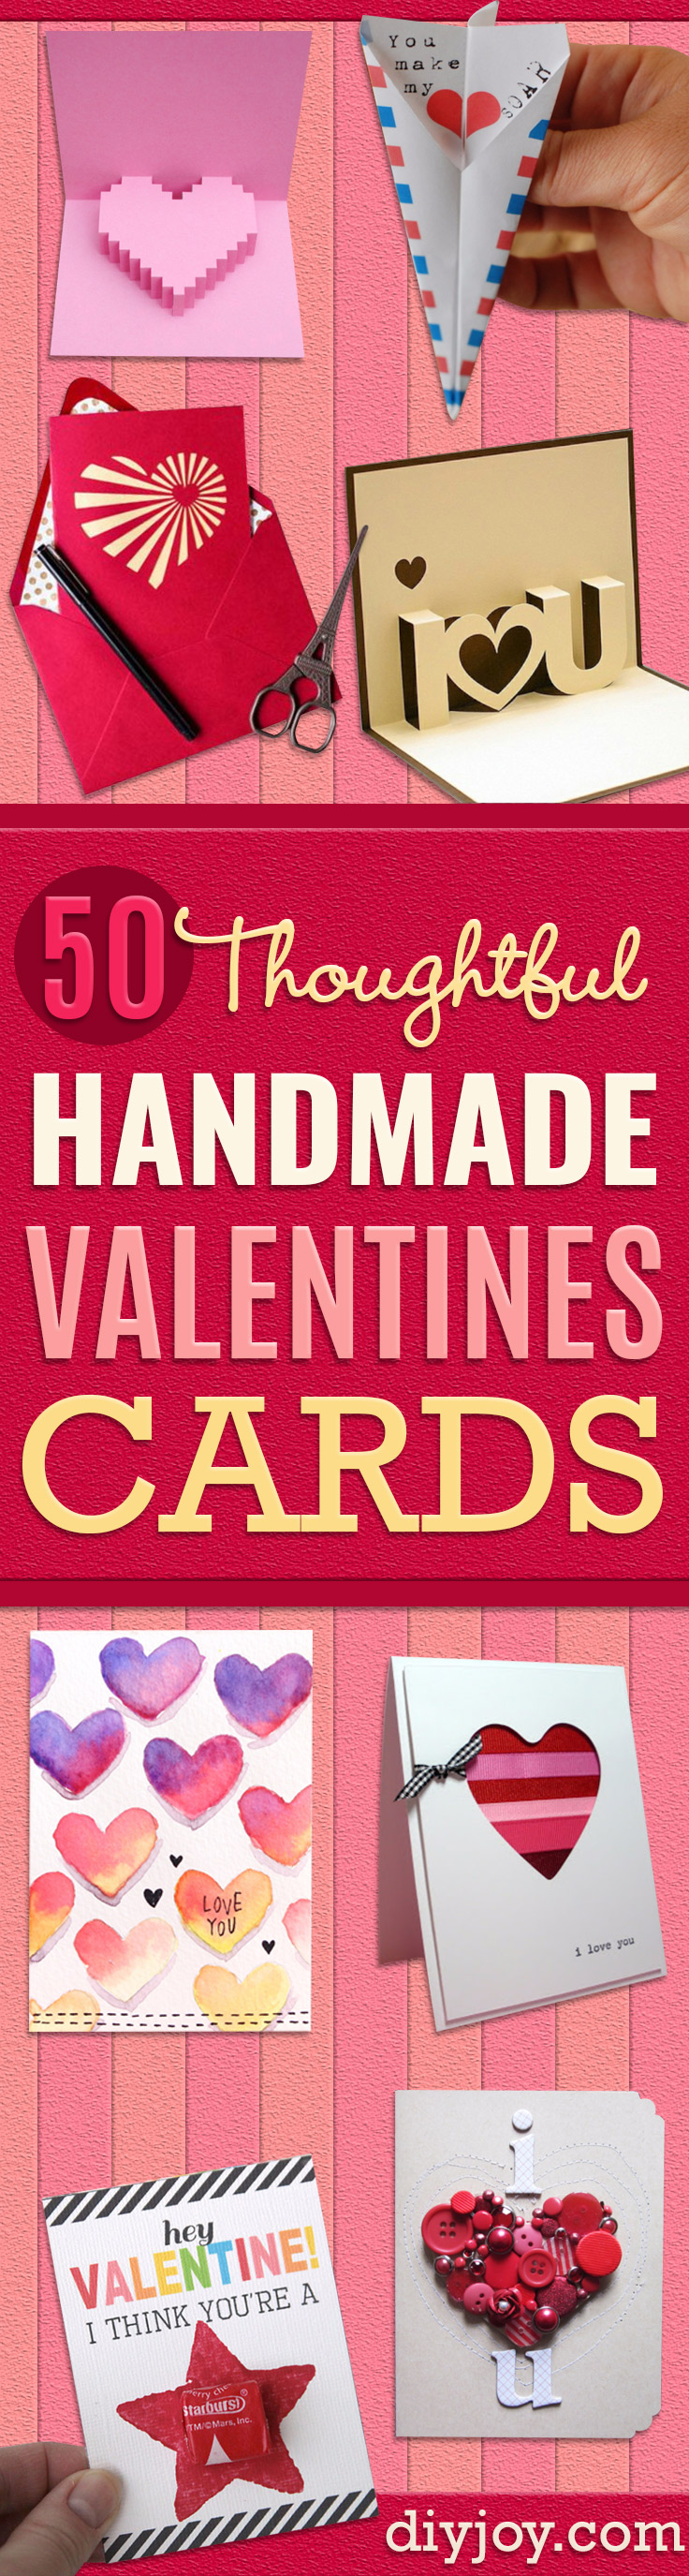 DIY Valentines Day Cards   Easy Handmade Cards For Him And Her, Kids,  Freinds